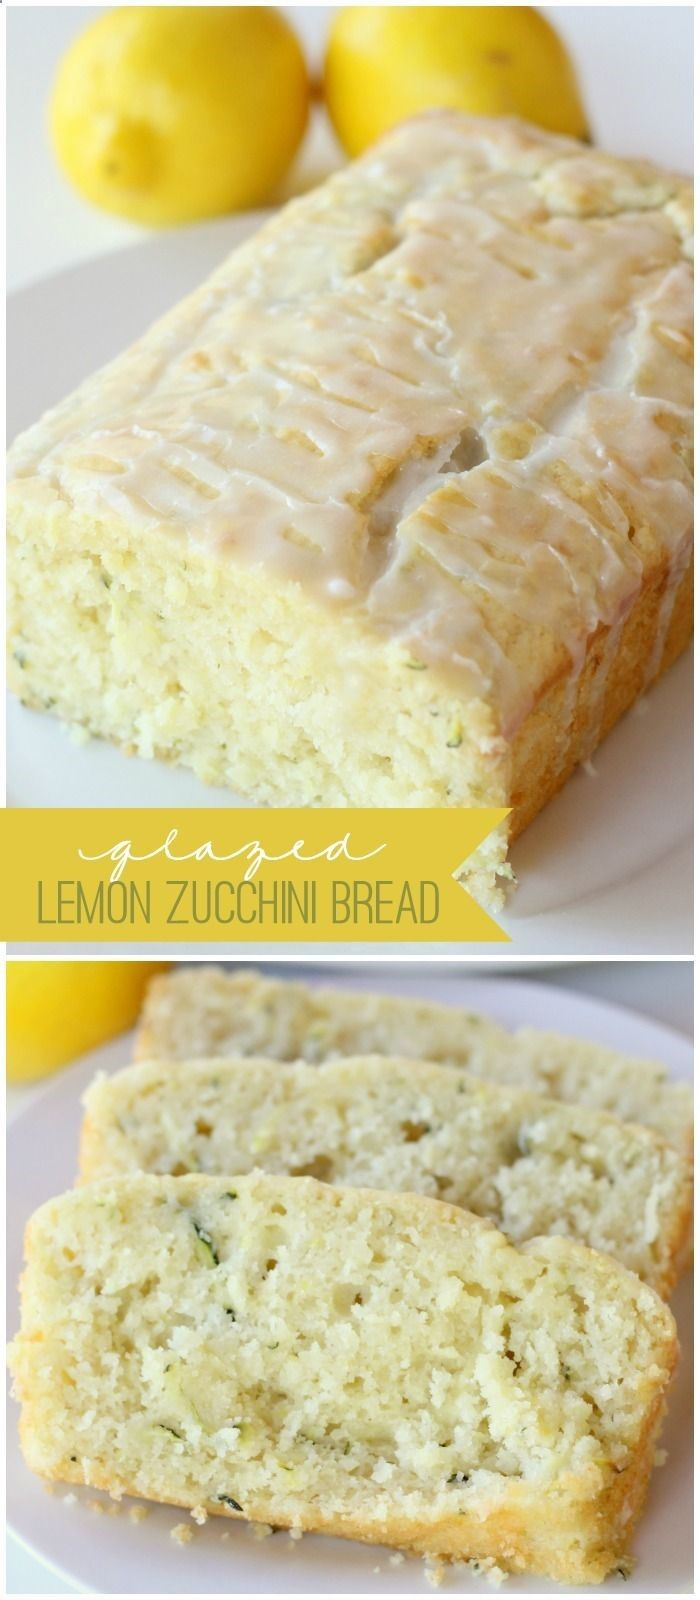 Glazed Lemon Zucchini Bread recipe. Lemon + Zucchini = I need to make this:) Delicious Desserts